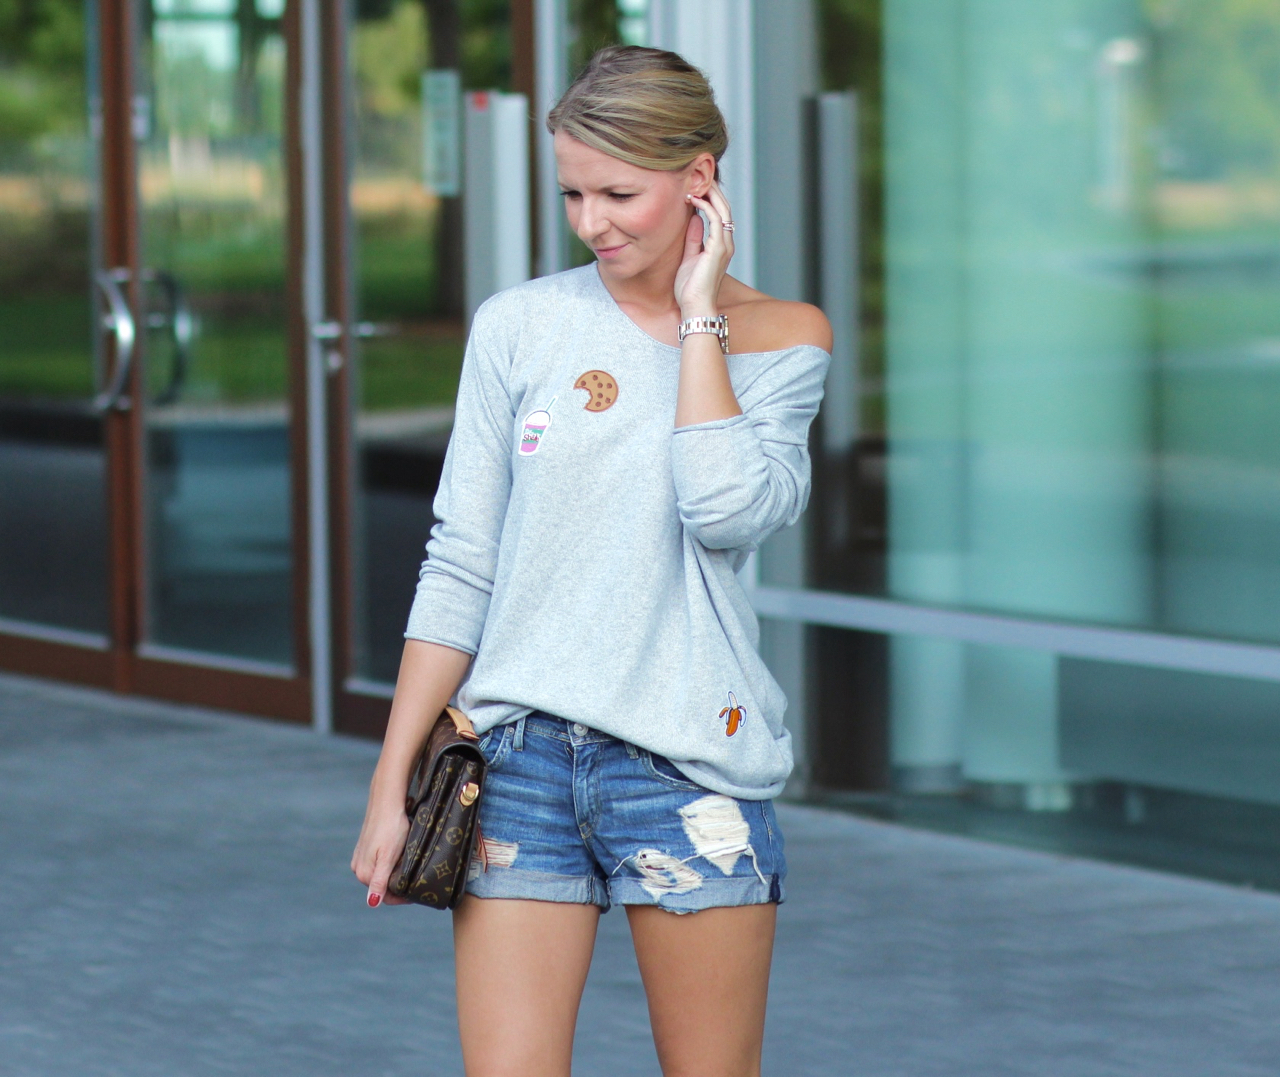 End of Summer mit Patches und Jeansshorts Outfit Fashion Patches Lifestyle Herbst Fall Autumn Jennifer Stadt.Land.Stil Zwillingsherz Adidas Sneakers StanSmith LouisVuitton LV Métis LVOE Shorts Denim